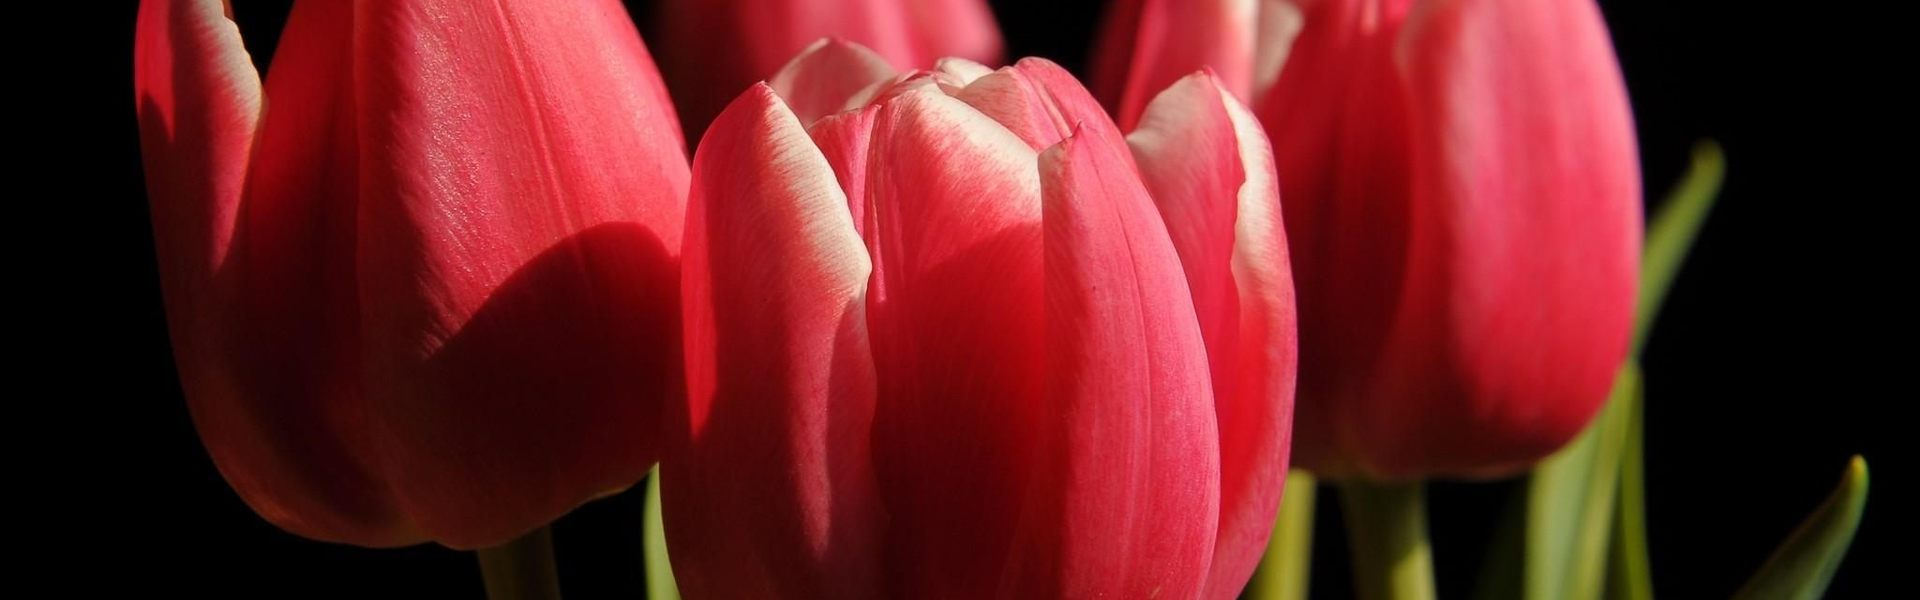 Wholesale tulip